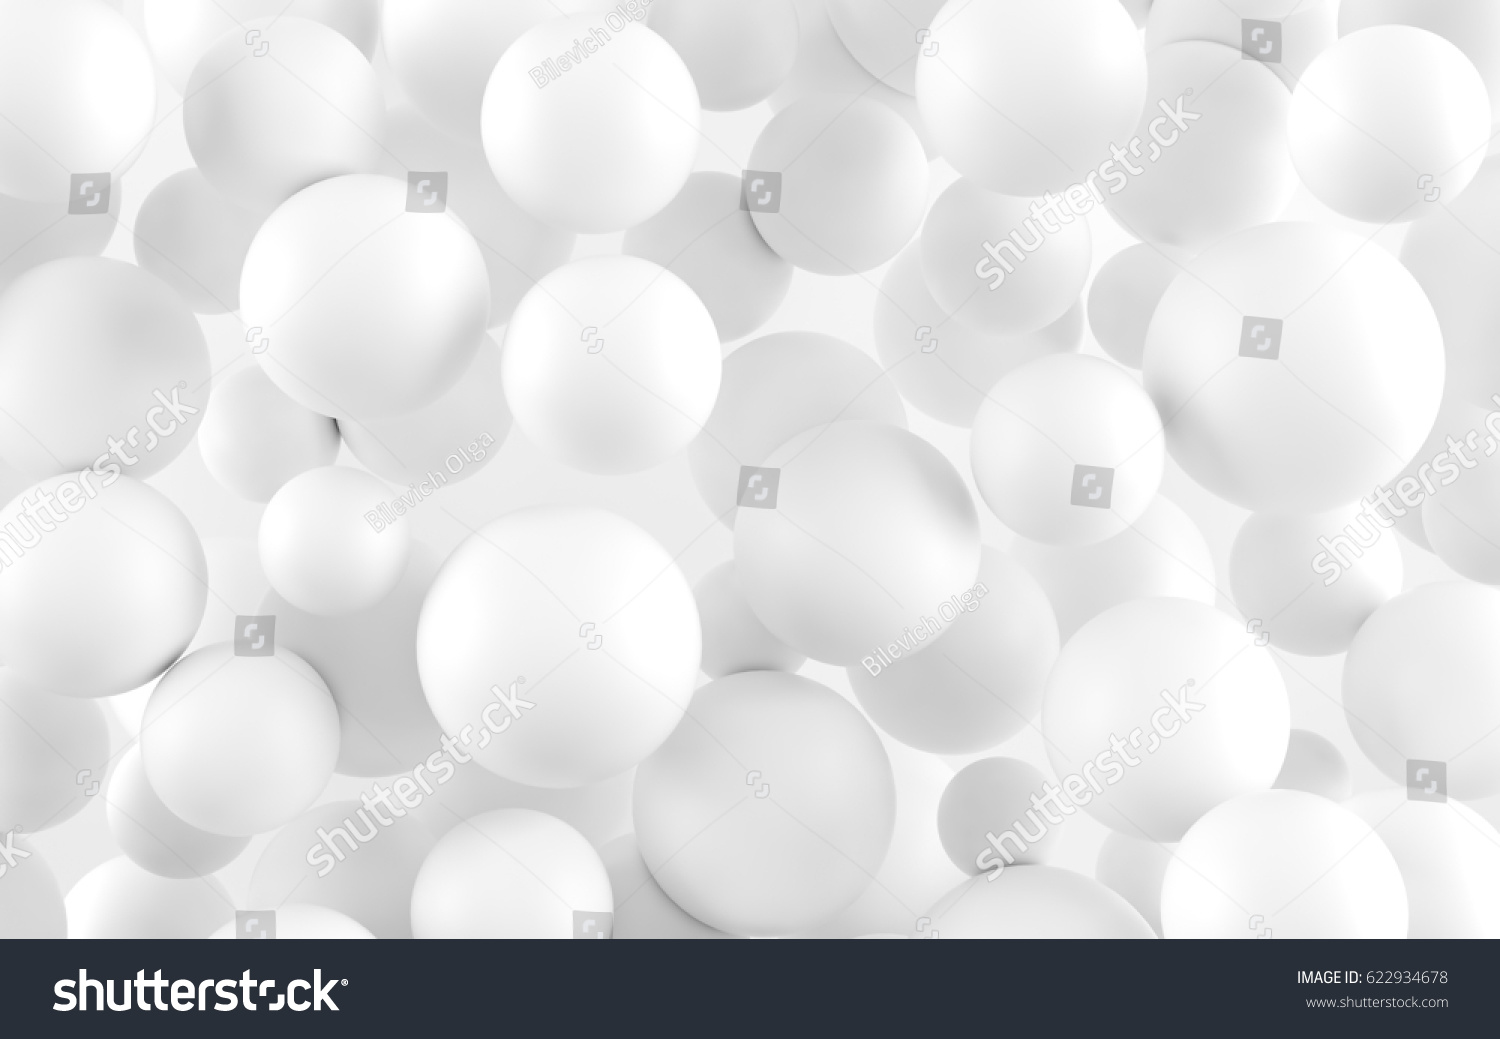 D background images - White Shpere Pearl Background 3 D Rendering